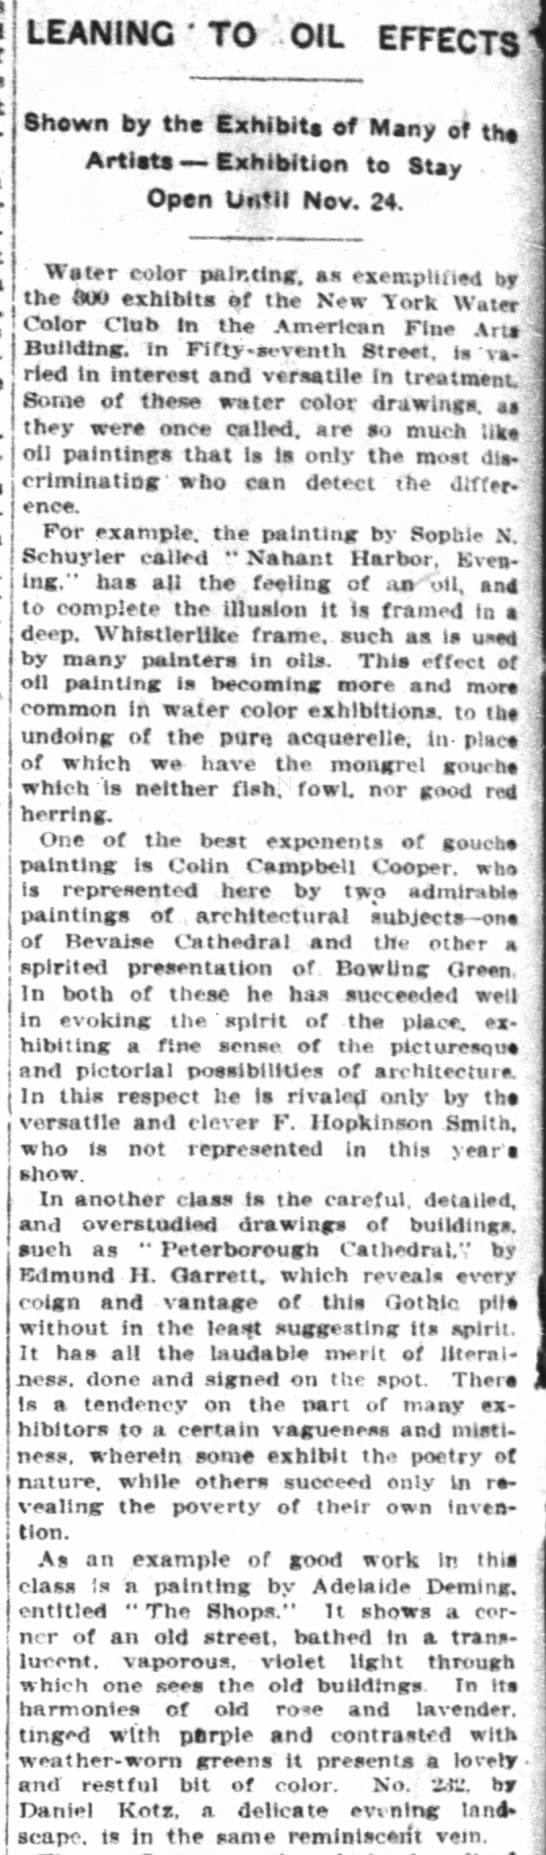 Leaning to Oil Effects. The New York Times (New York, New York) 3 November 1907, p 8 -